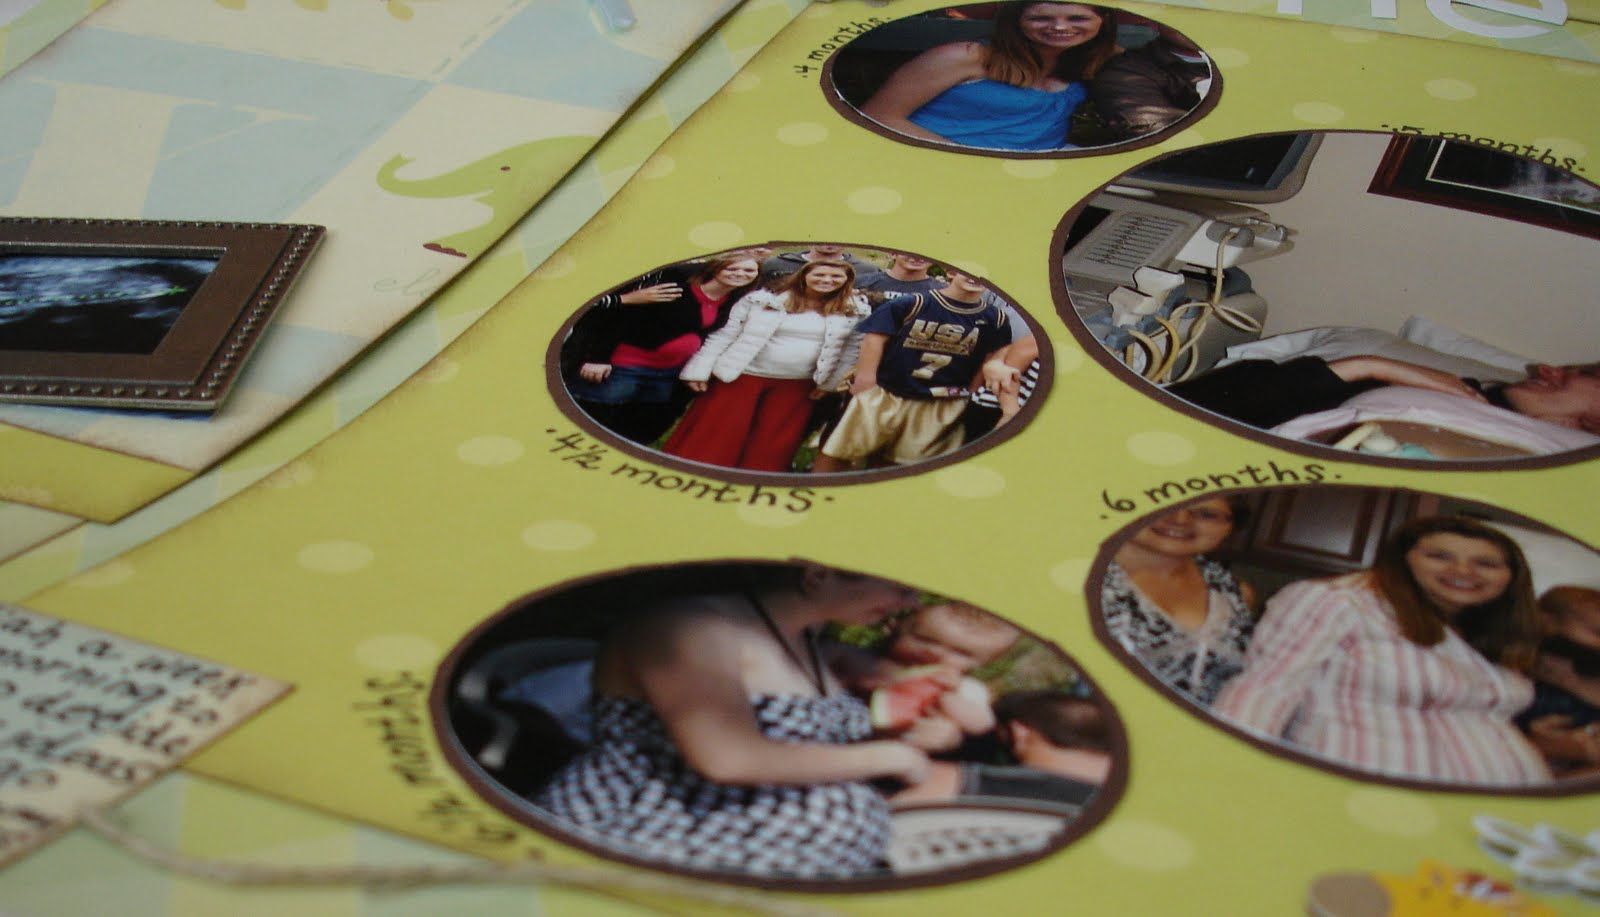 Pregnancy scrapbook ideas journaling - I Always Think That I Will Have Too Much Space With My Journal And Then End Up Running Out Of Room Because I Want To Talk So Much